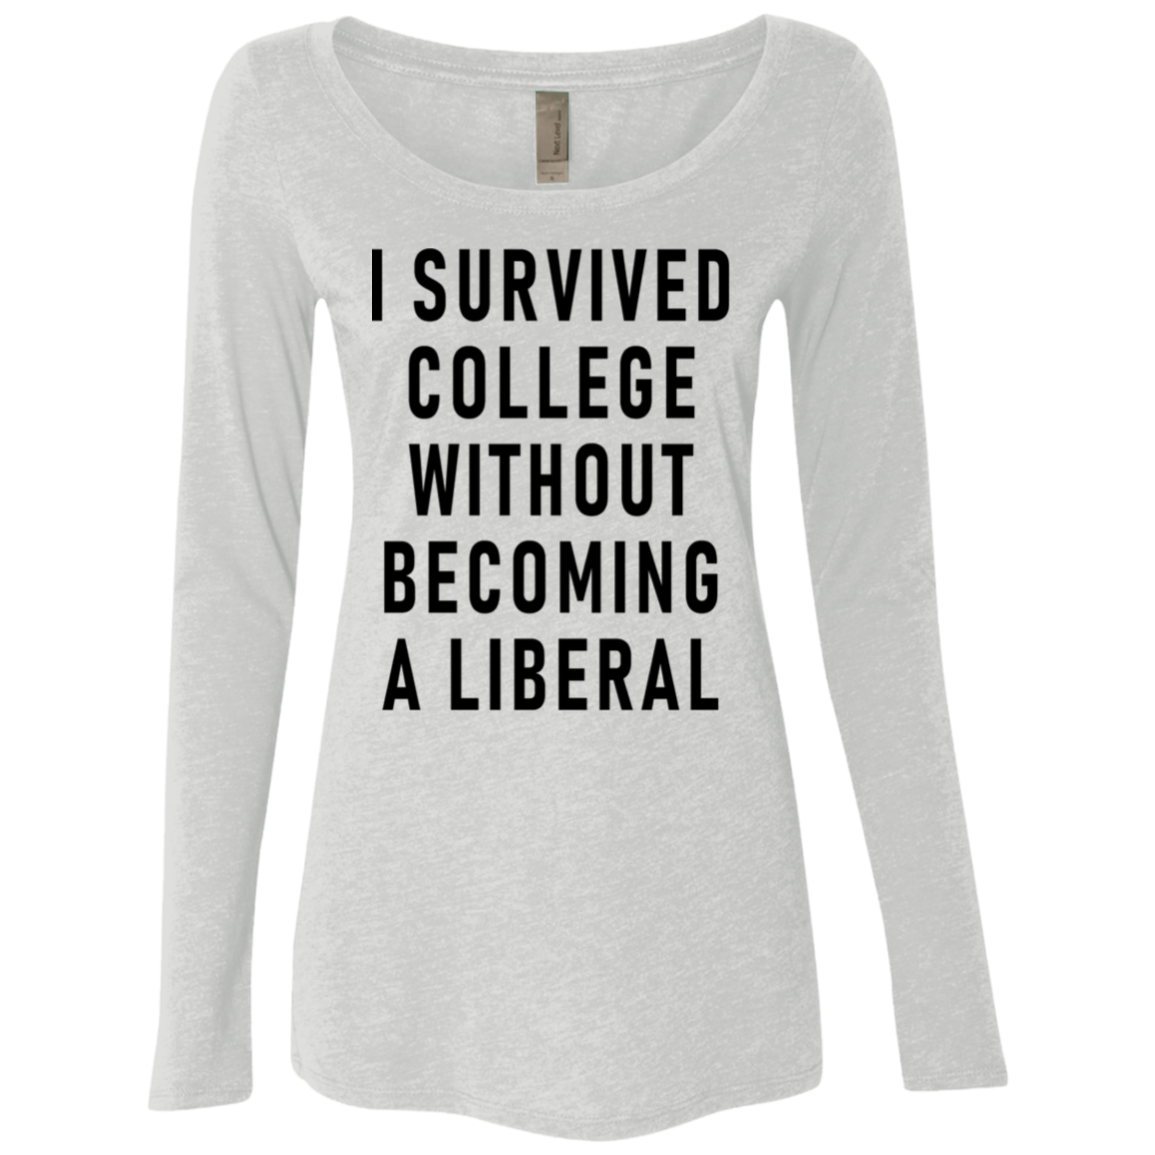 I Survived College Without Becomig A Liberal Women's Long Sleeve Tee